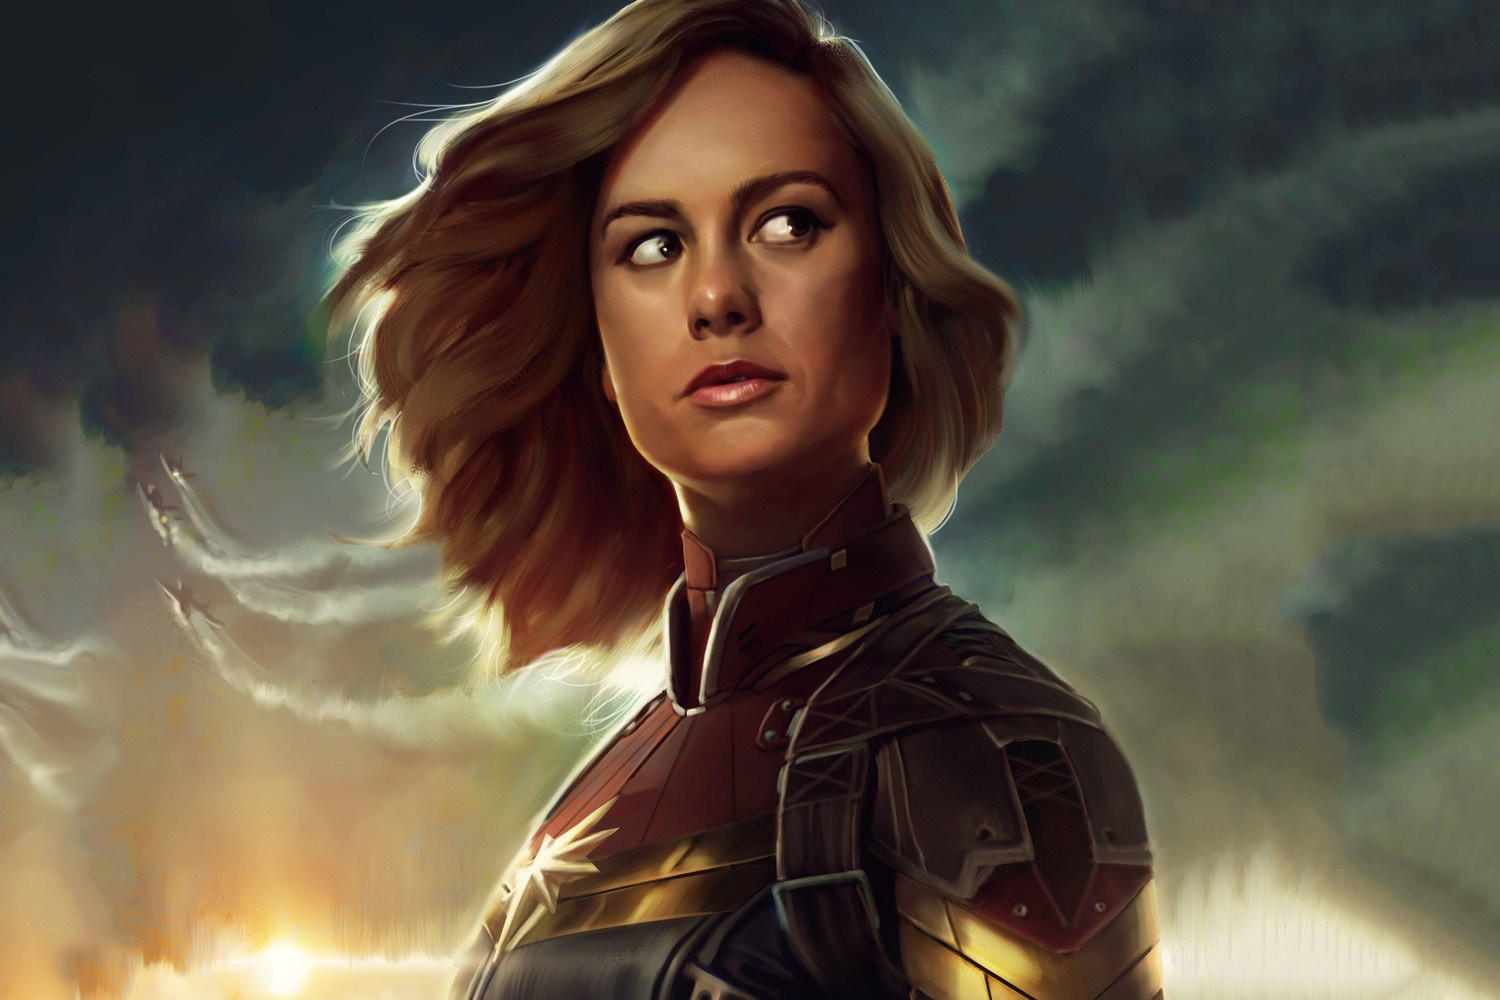 Captain Marvel Movie Poster Hd